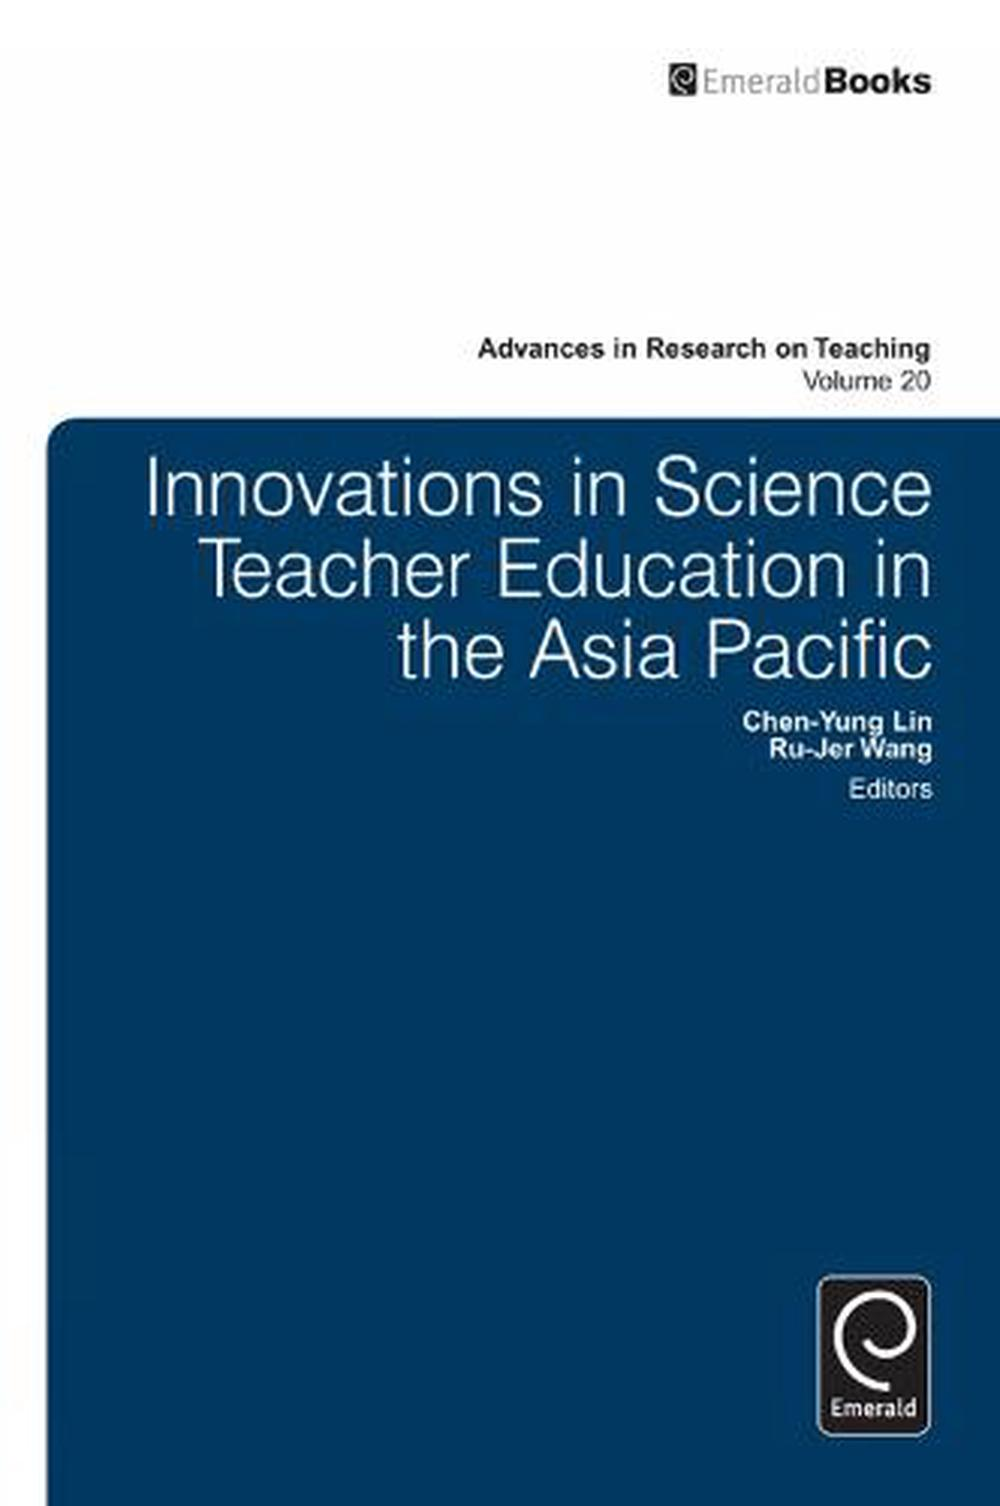 Innovations in Science Teacher Education in the Asia Pacific